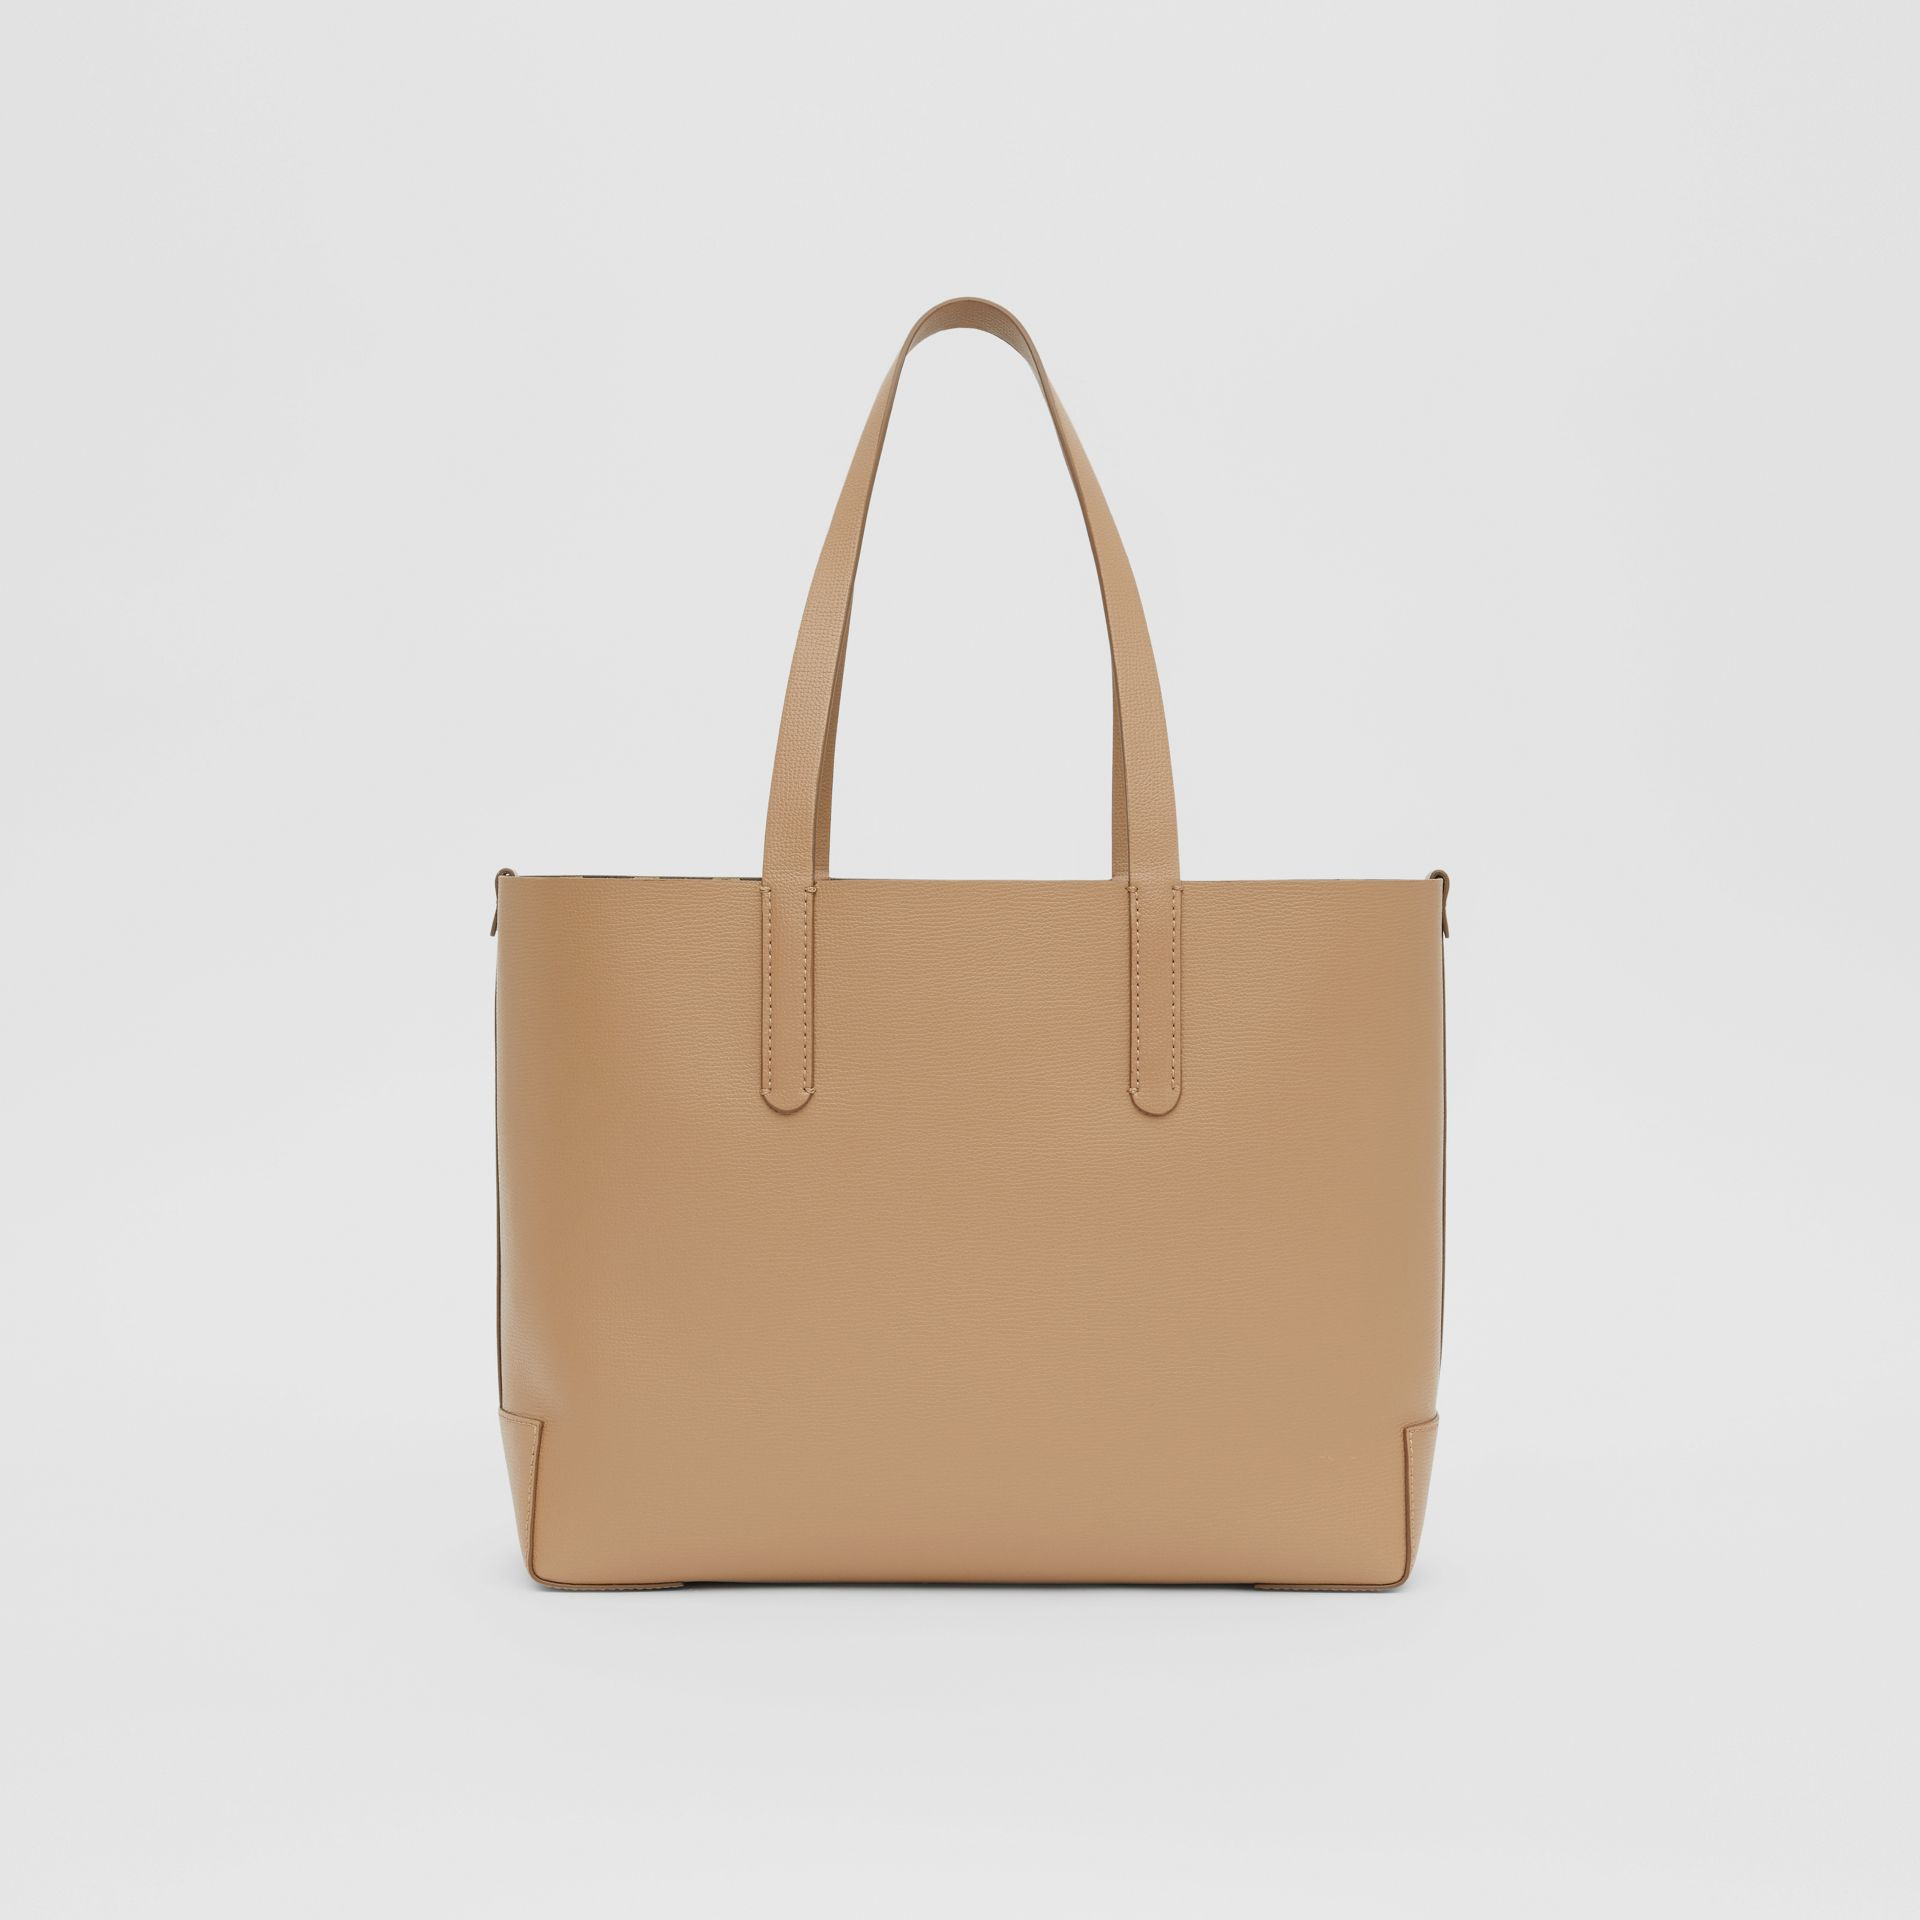 Embossed Monogram Motif Leather Tote in Camel - Women | Burberry Canada - gallery image 9